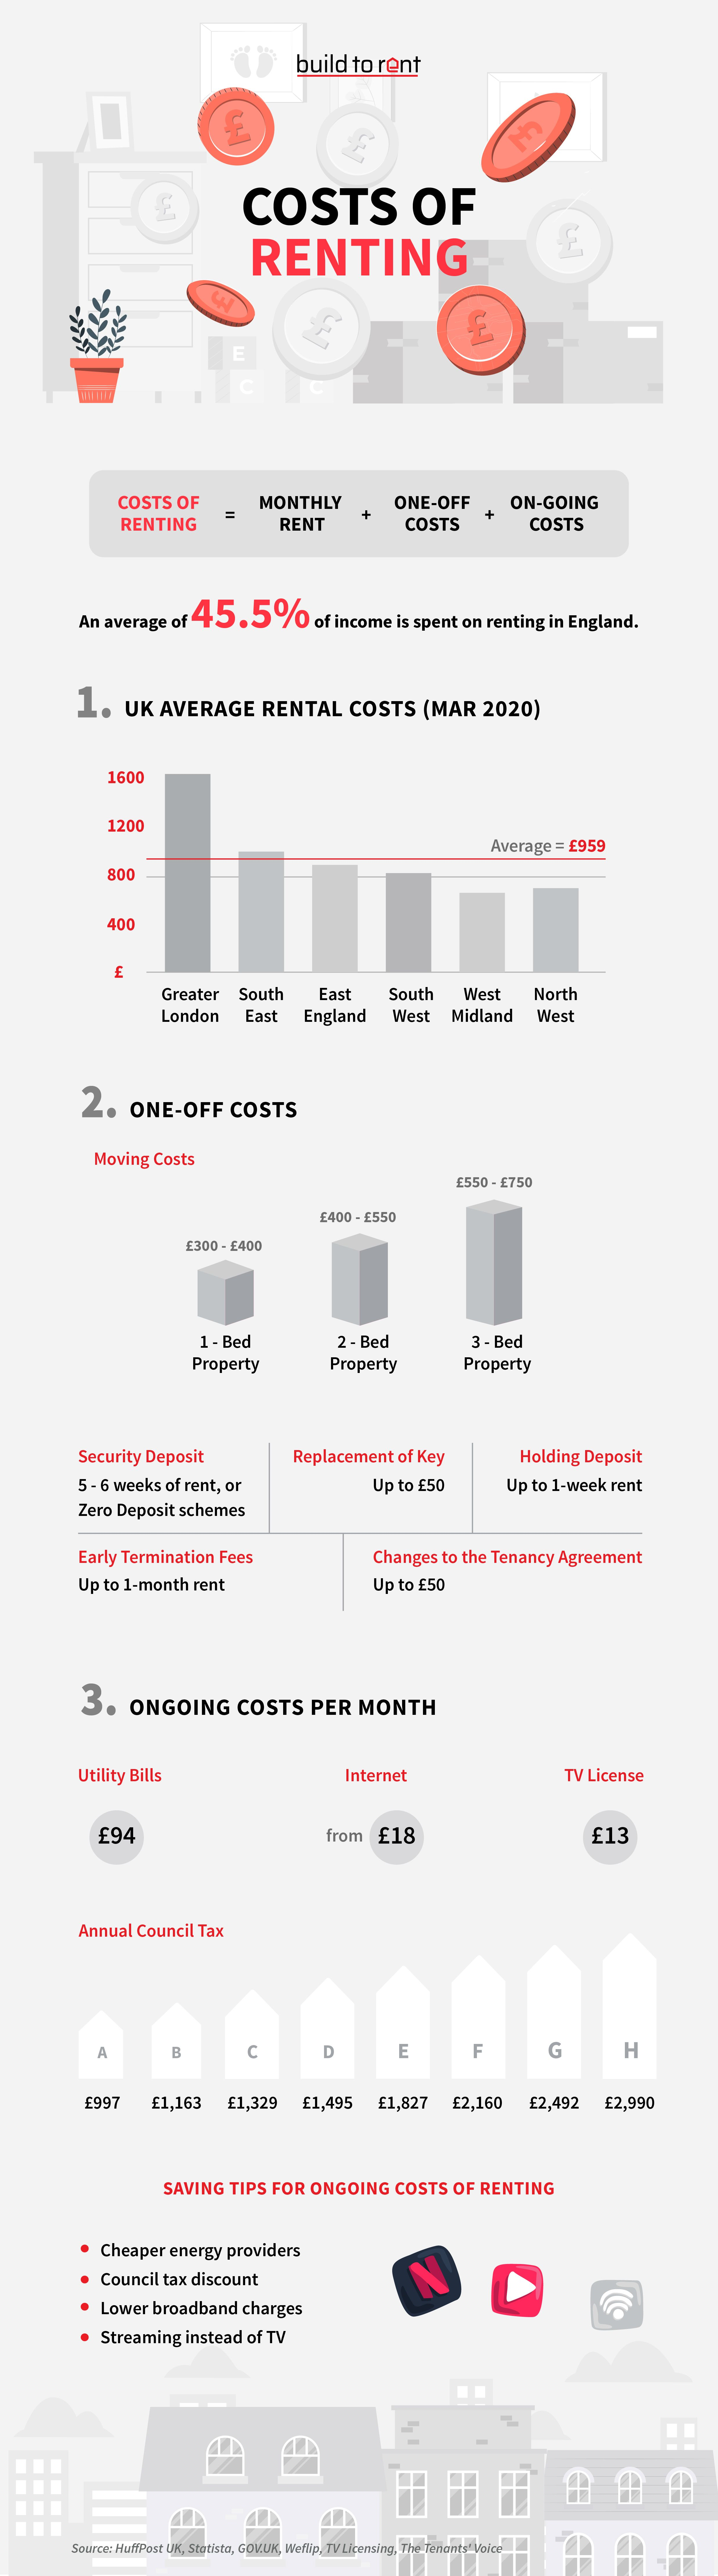 What are the Costs of Renting?